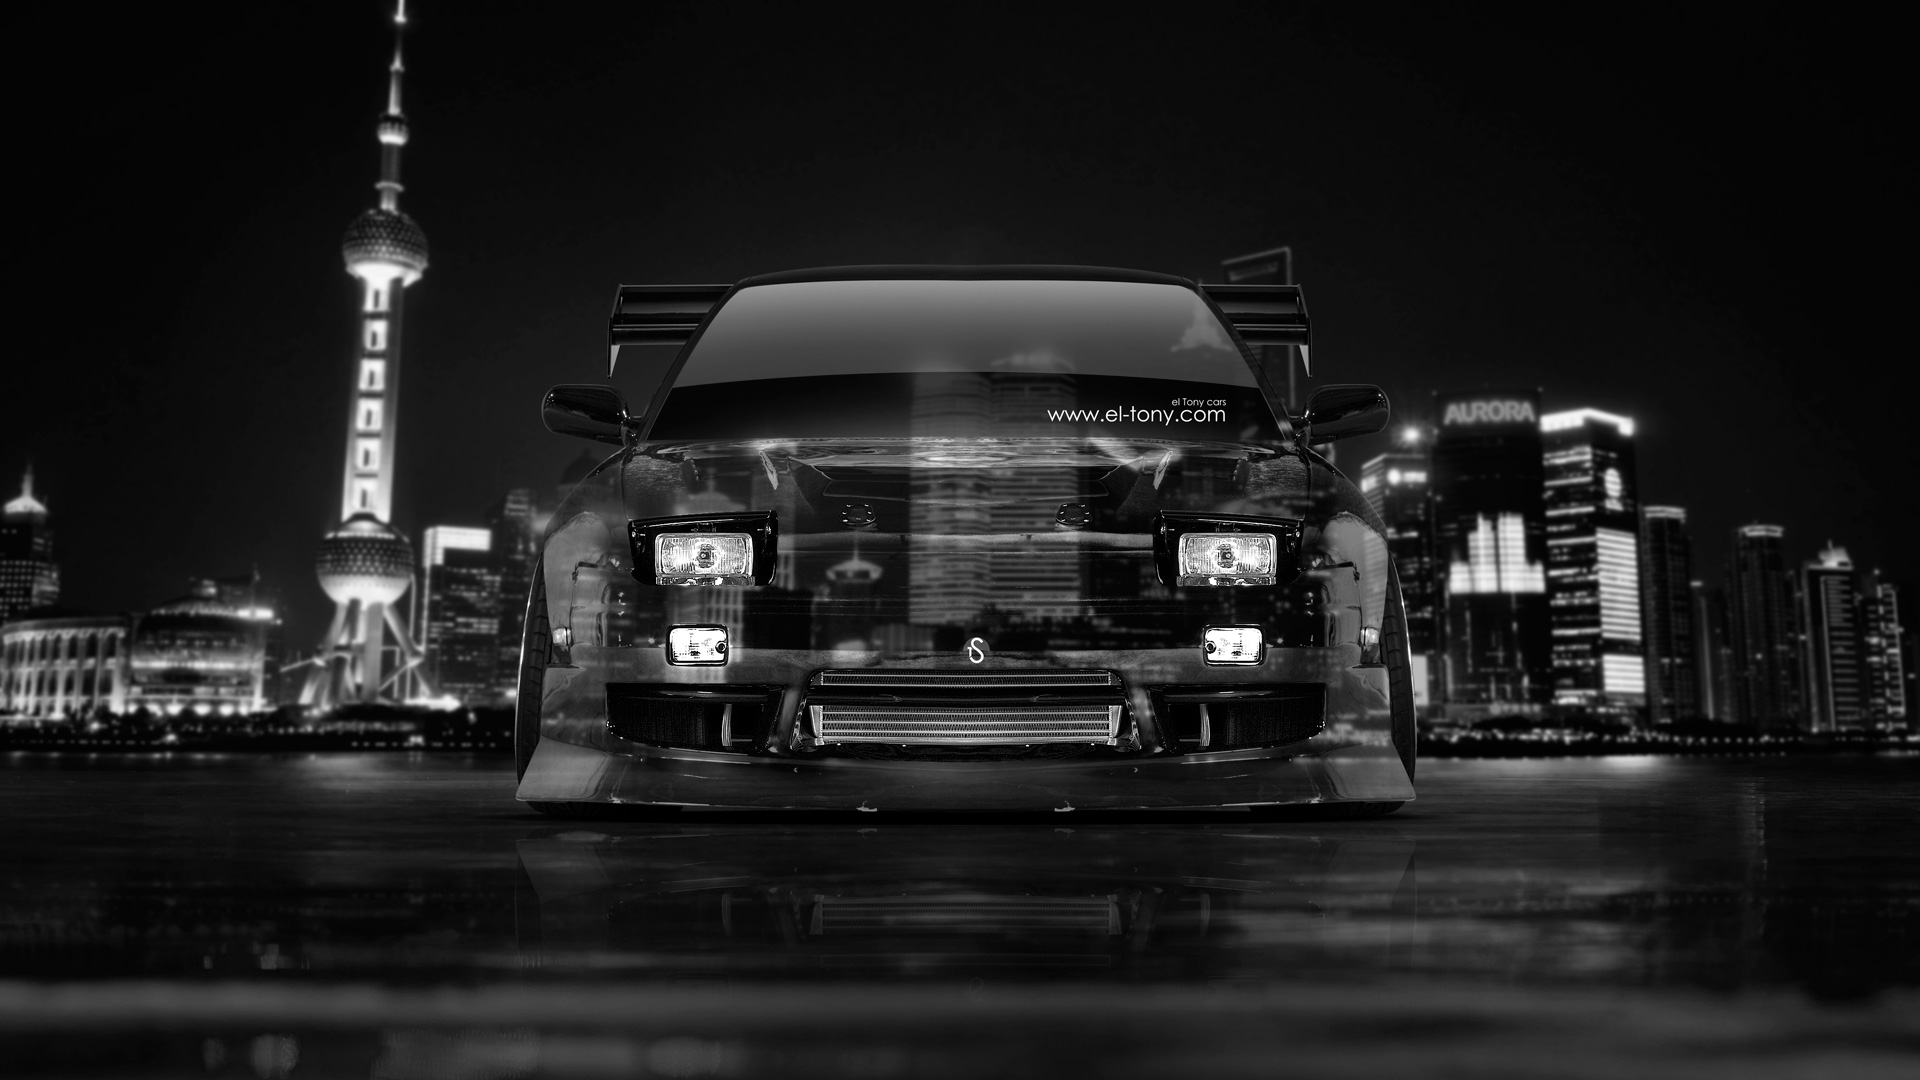 Marvelous Ordinaire Nissan 180SX JDM Front Crystal City Car 2014